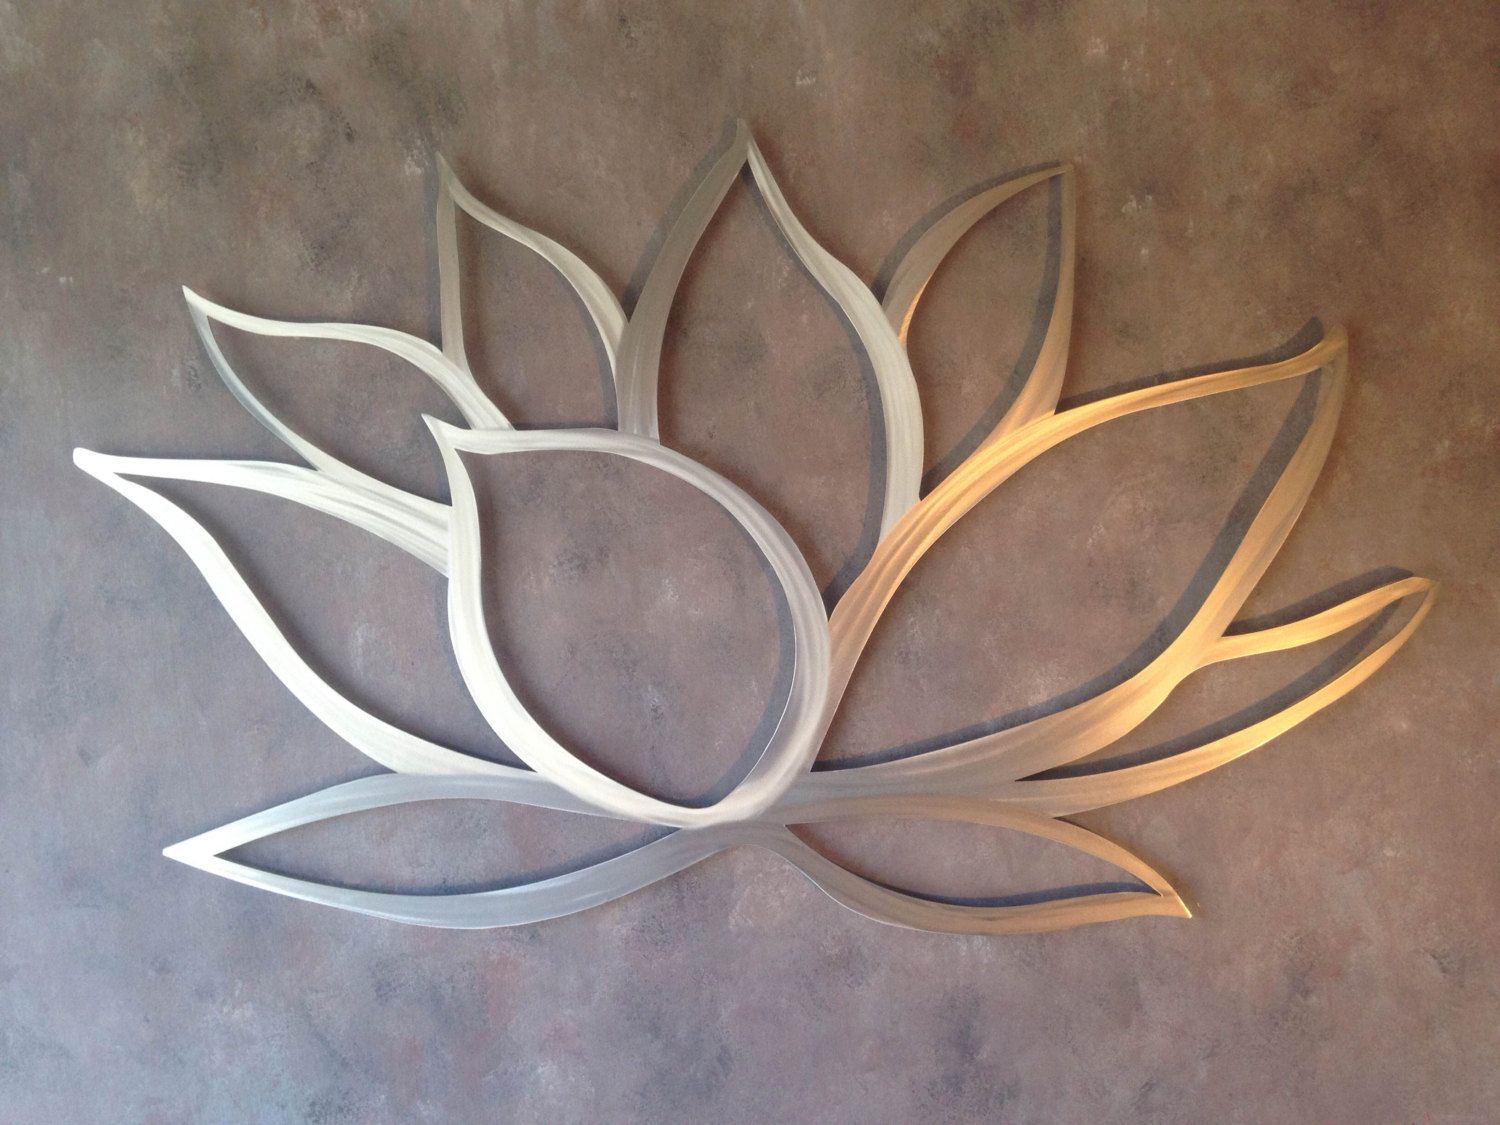 Express the metal feng shui element in your home or office with